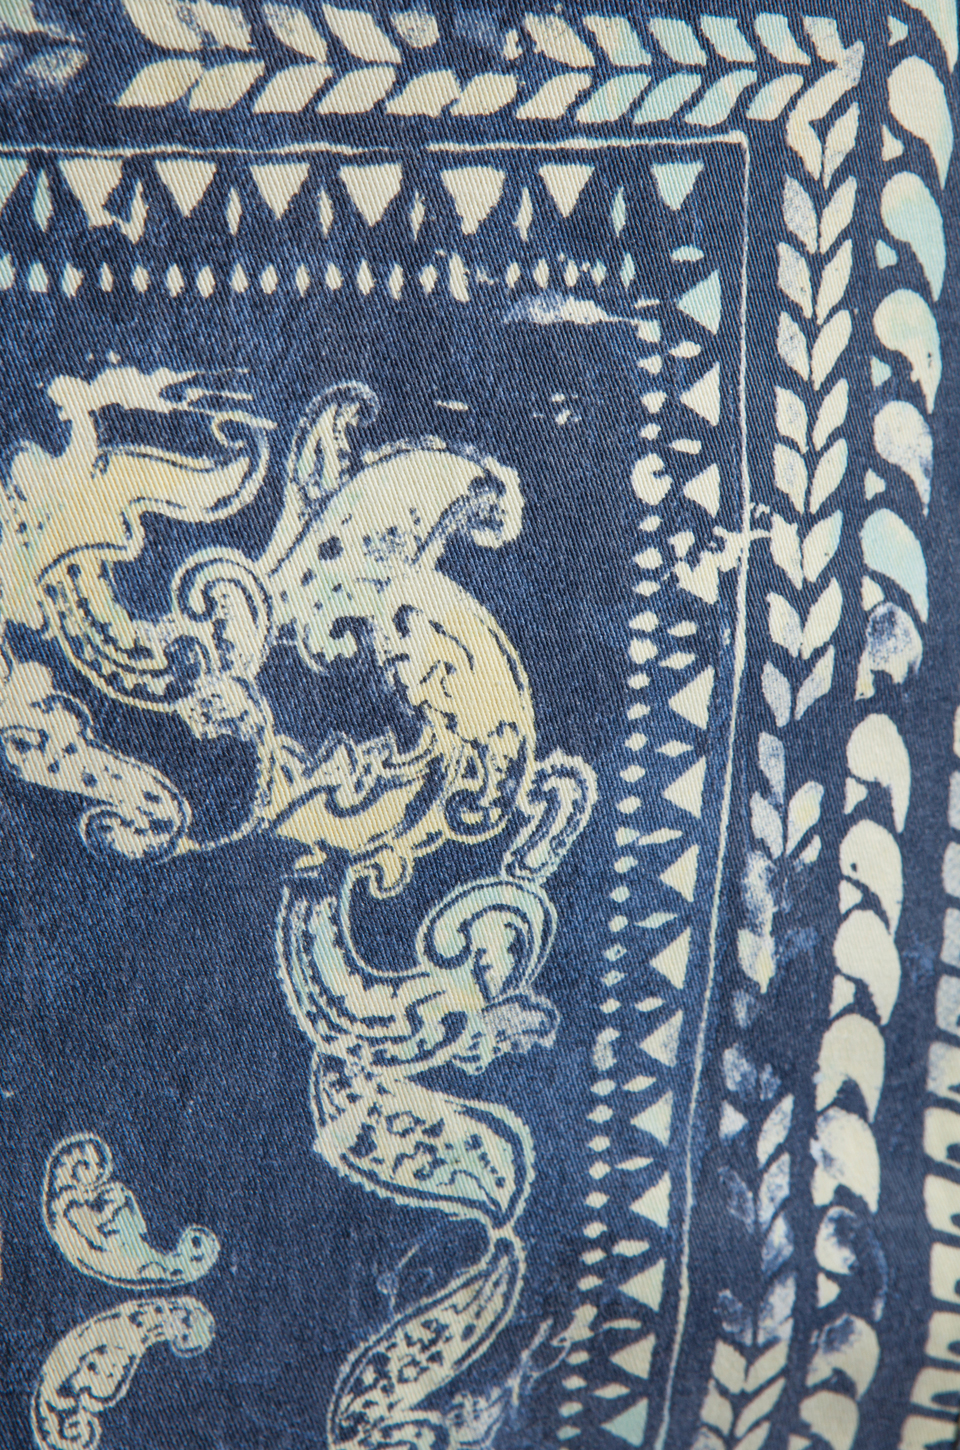 Insight Bandana Dress in Indigo Paisley